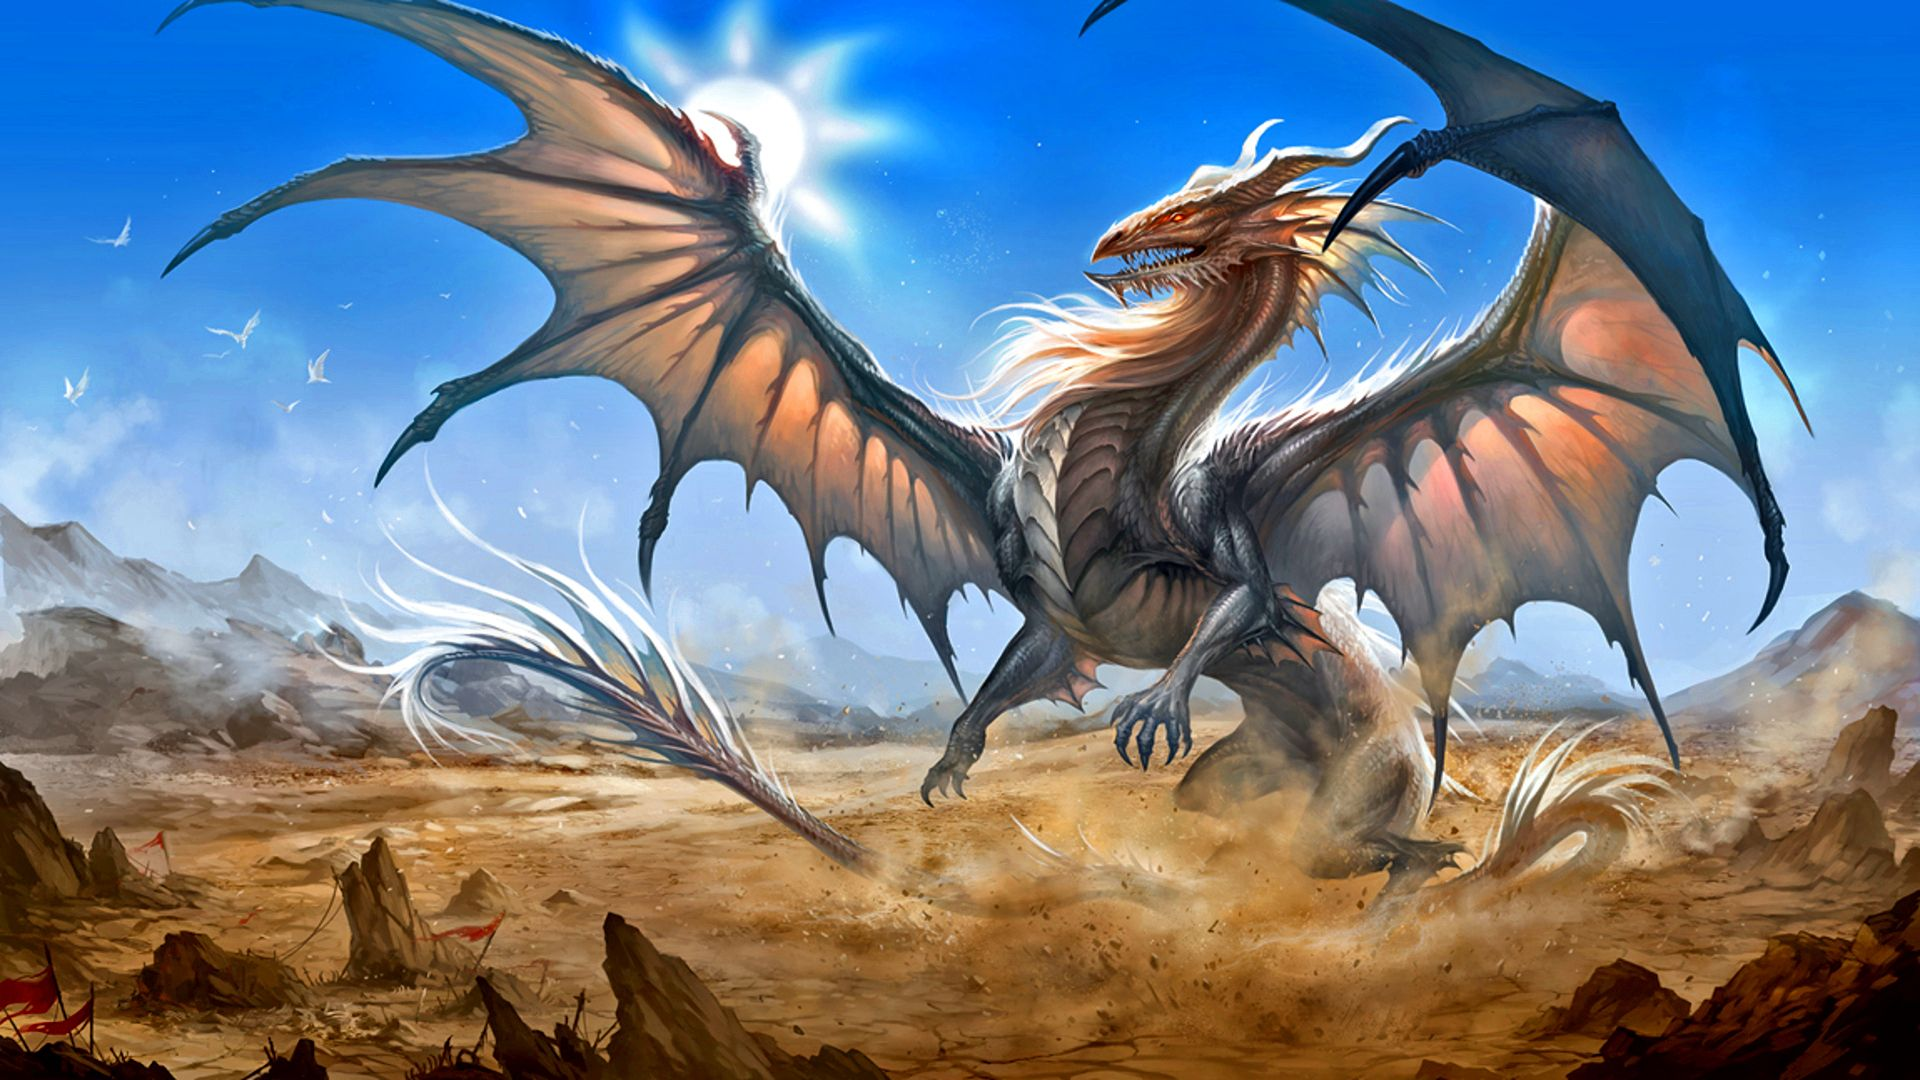 What would you do if you saw a dragon this big? Wow I